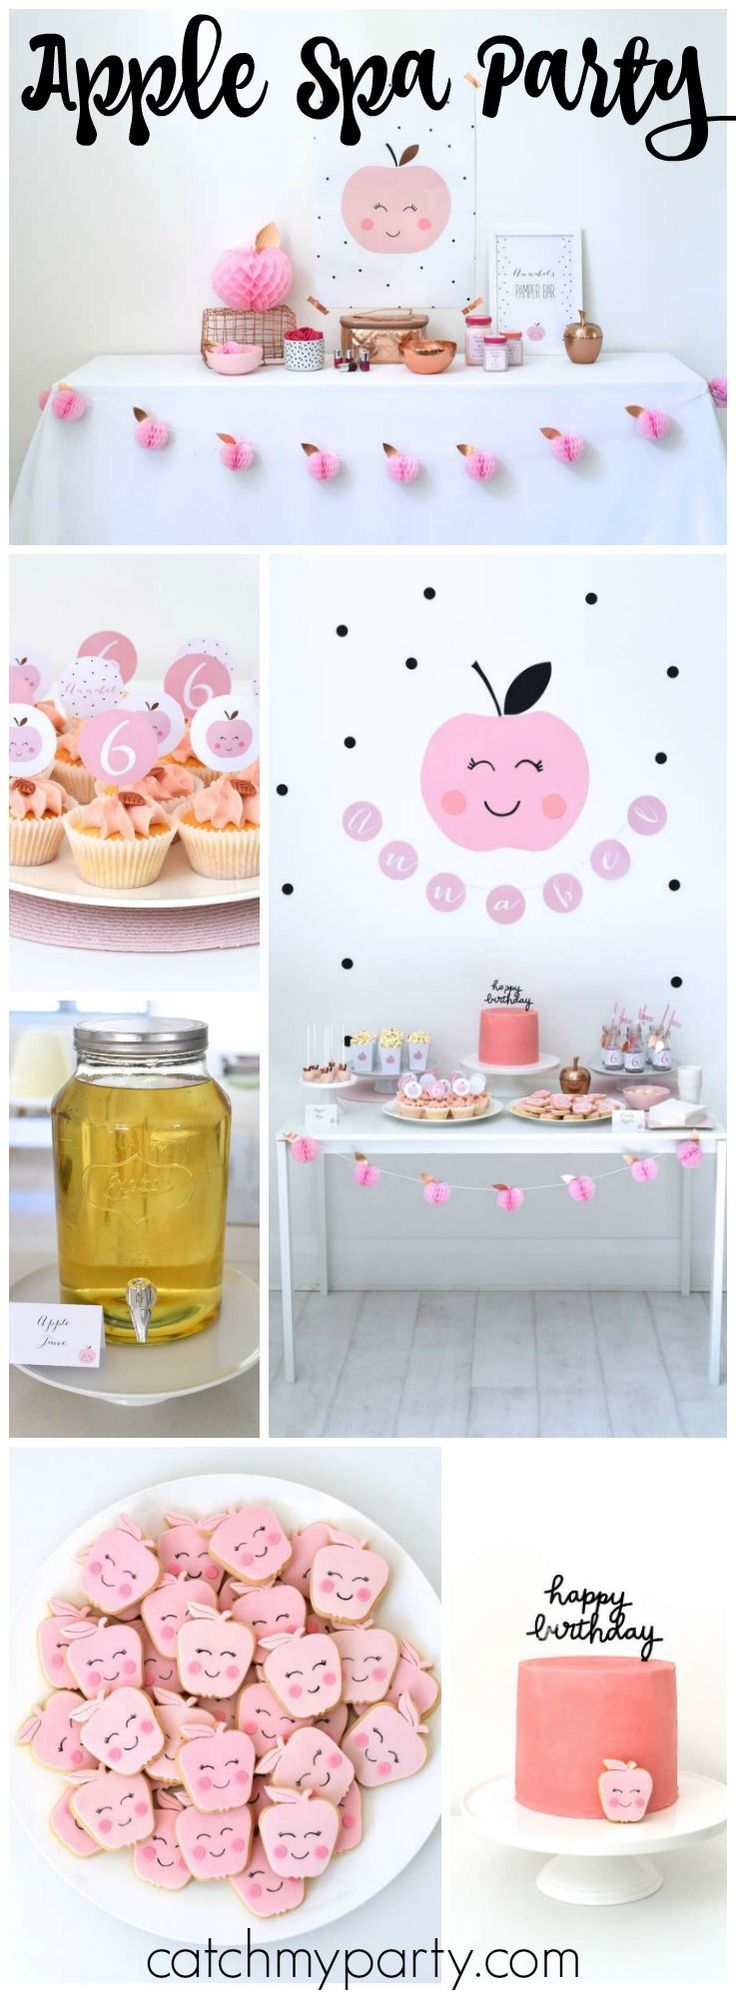 247 best Spa Party Ideas images on Pinterest | Birthday party ideas ...